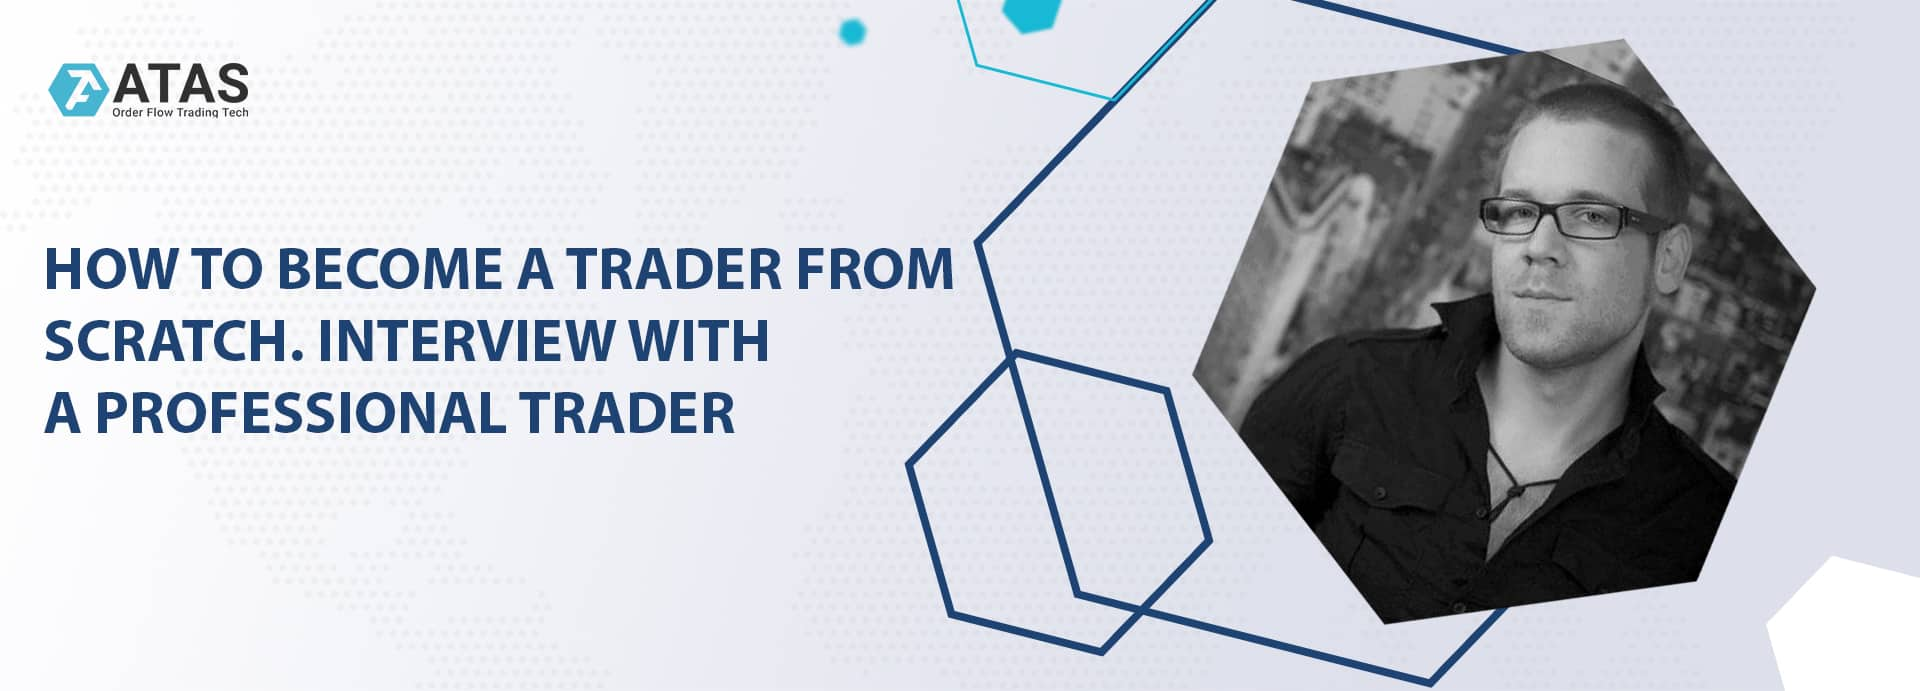 HOW TO BECOME A TRADER FROM SCRATCH. INTERVIEW WITH A PROFESSIONAL TRADER